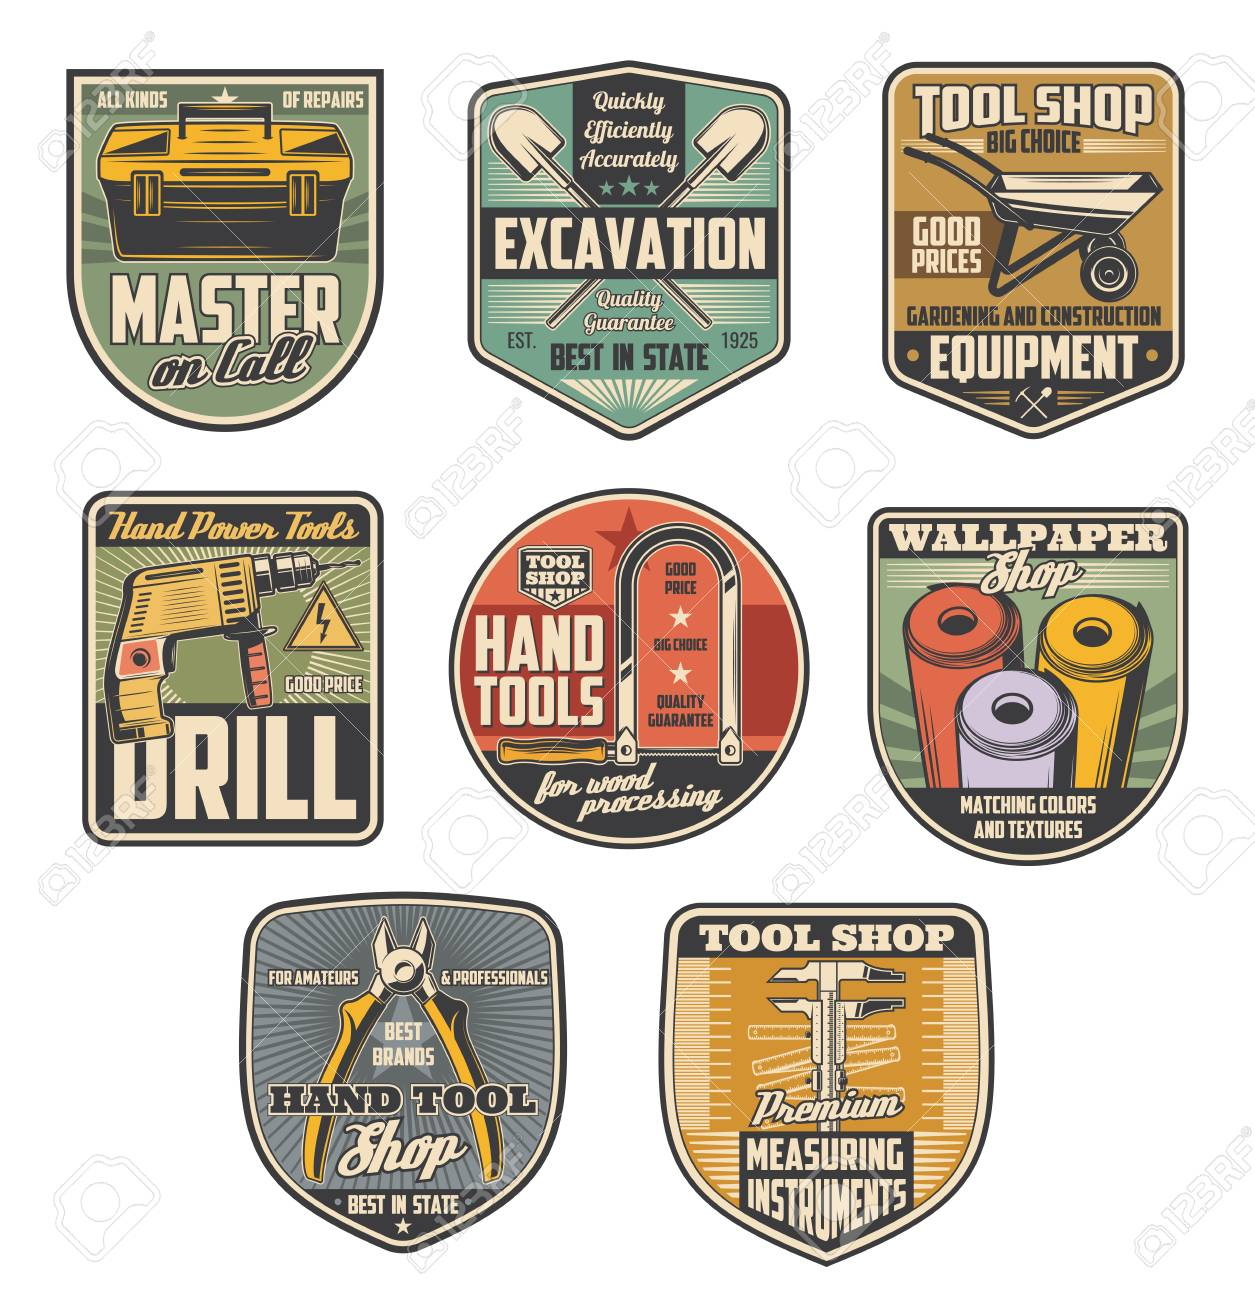 Repair tool shop retro badges with construction equipment and instrument. Pliers, drill and toolbox, tape measure, wallpaper and hacksaw, shovel and wheelbarrow symbols for hardware store design - 108571330